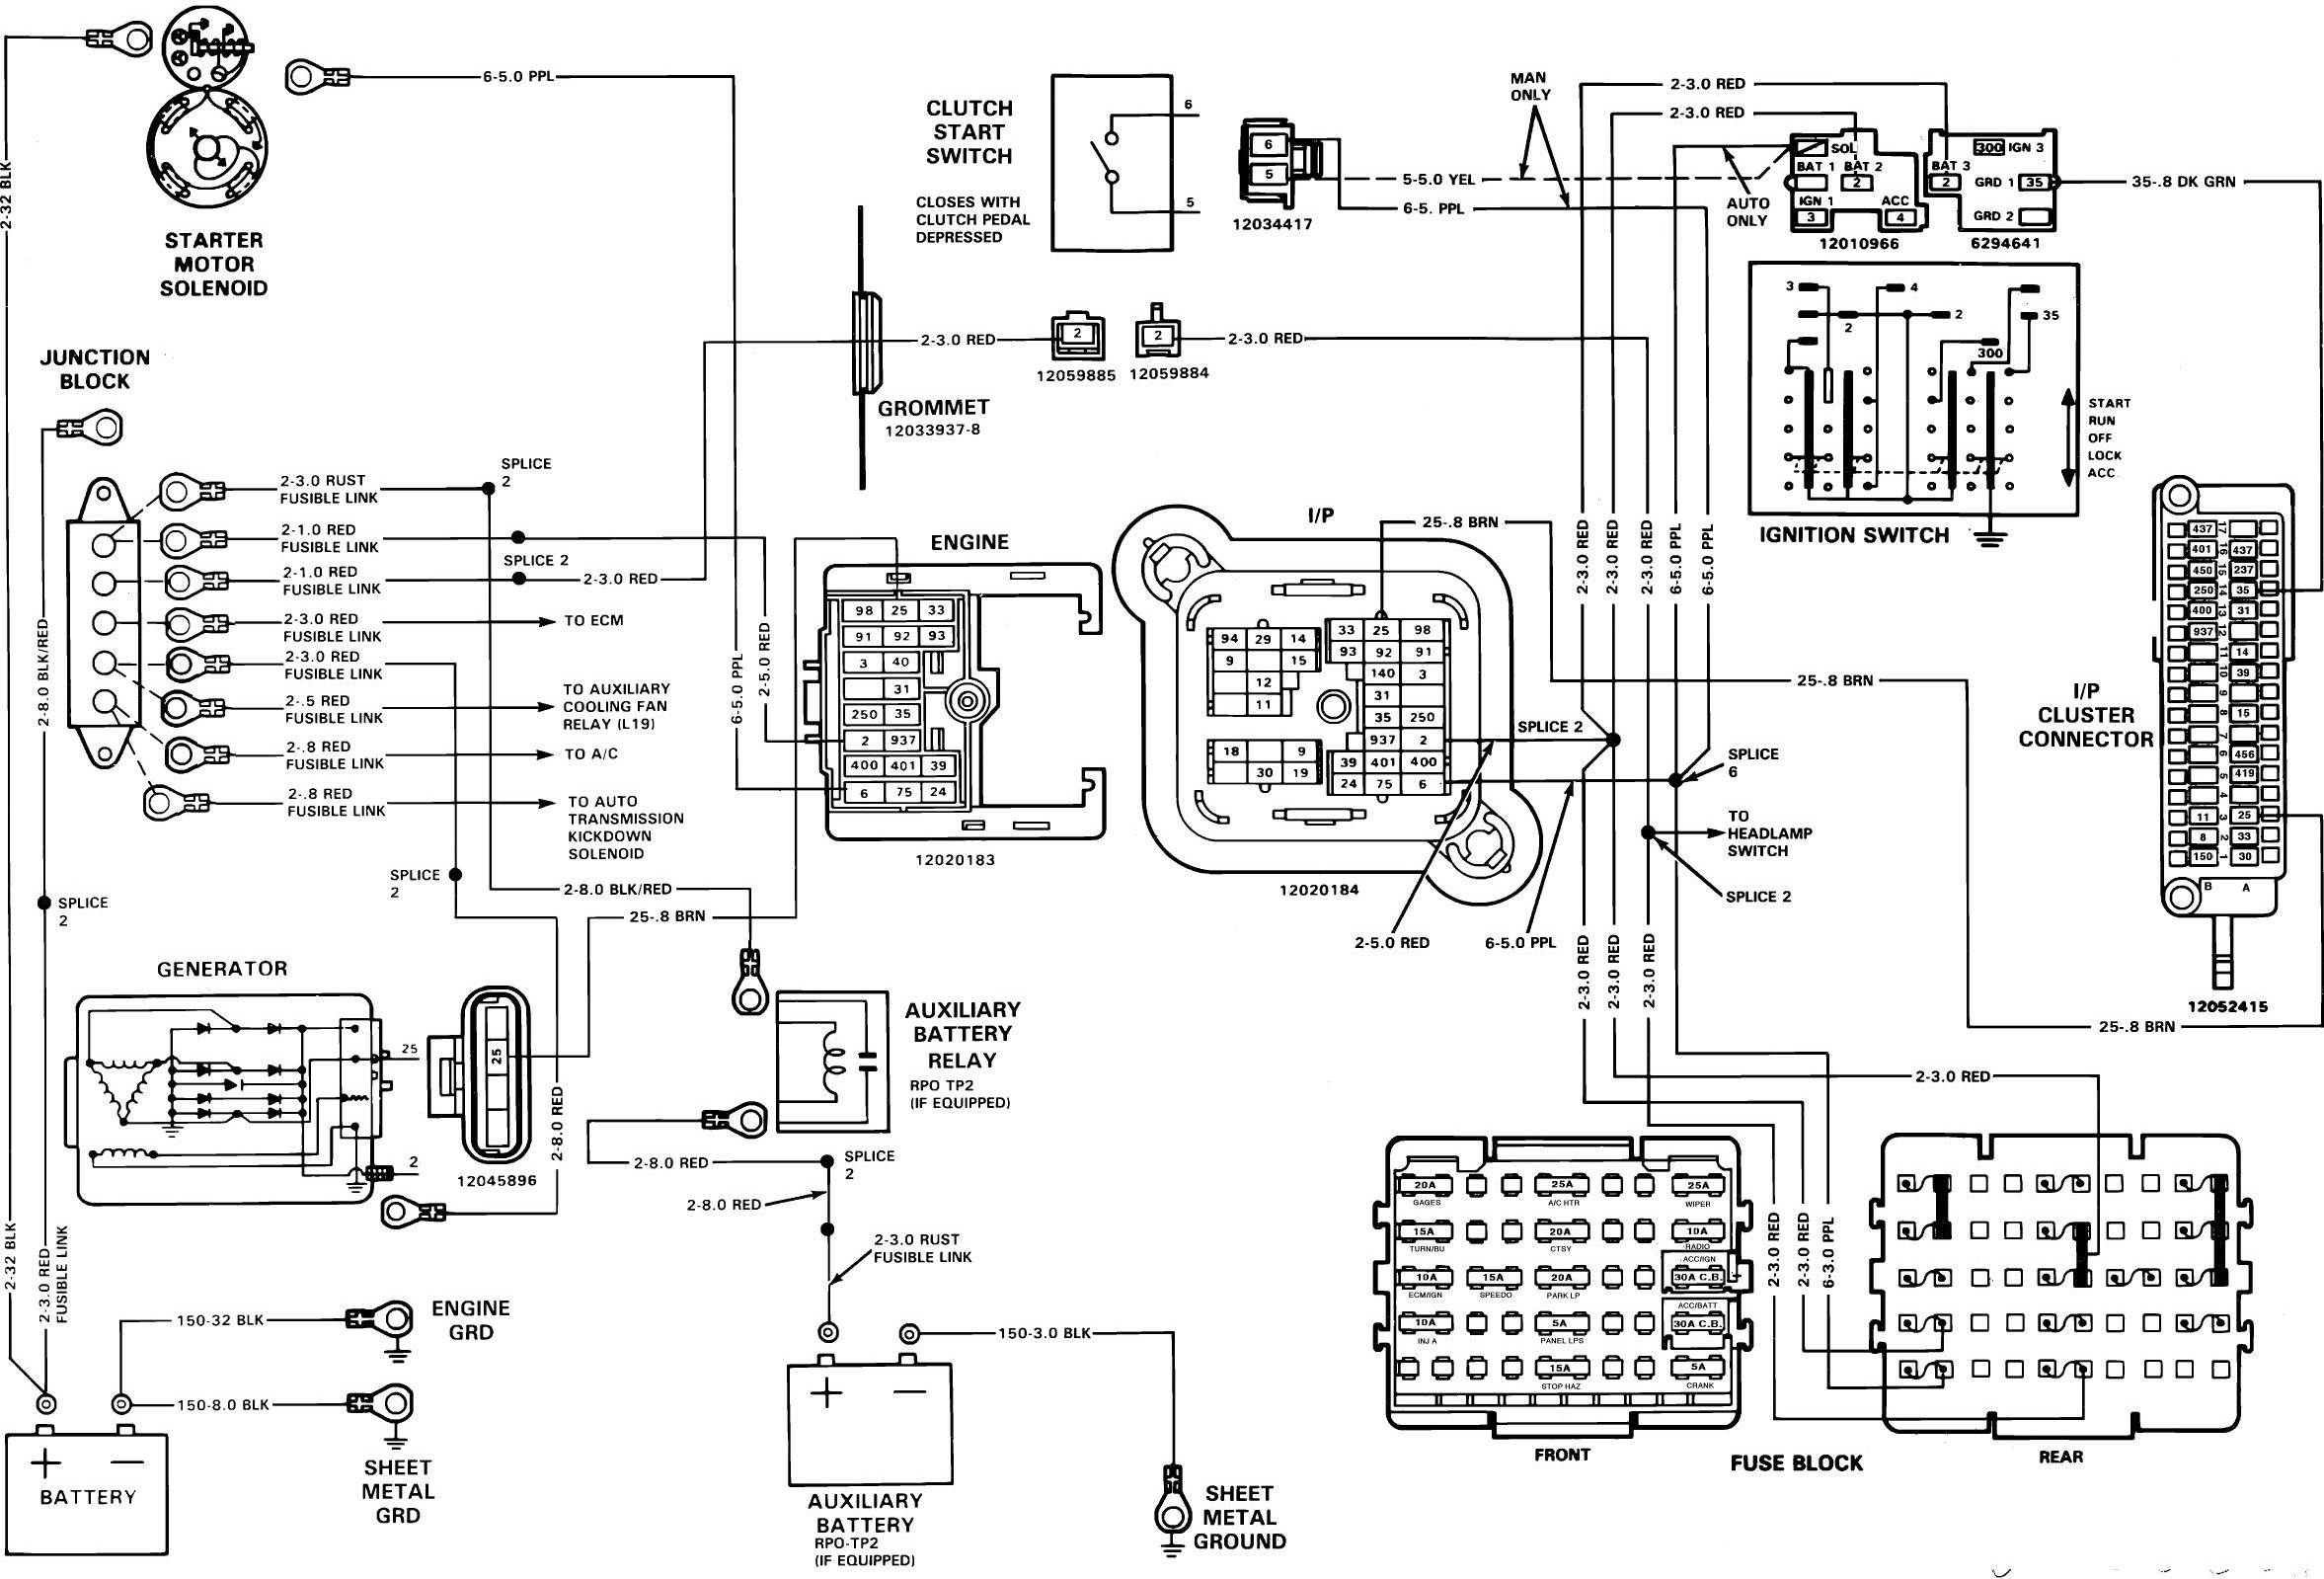 RG_9426] Wiring Diagram Also 89 Toyota Pickup Wiring Diagram On 1978 Gmc  Download DiagramBletu Orsal Mill Icism Dome Mohammedshrine Librar Wiring 101